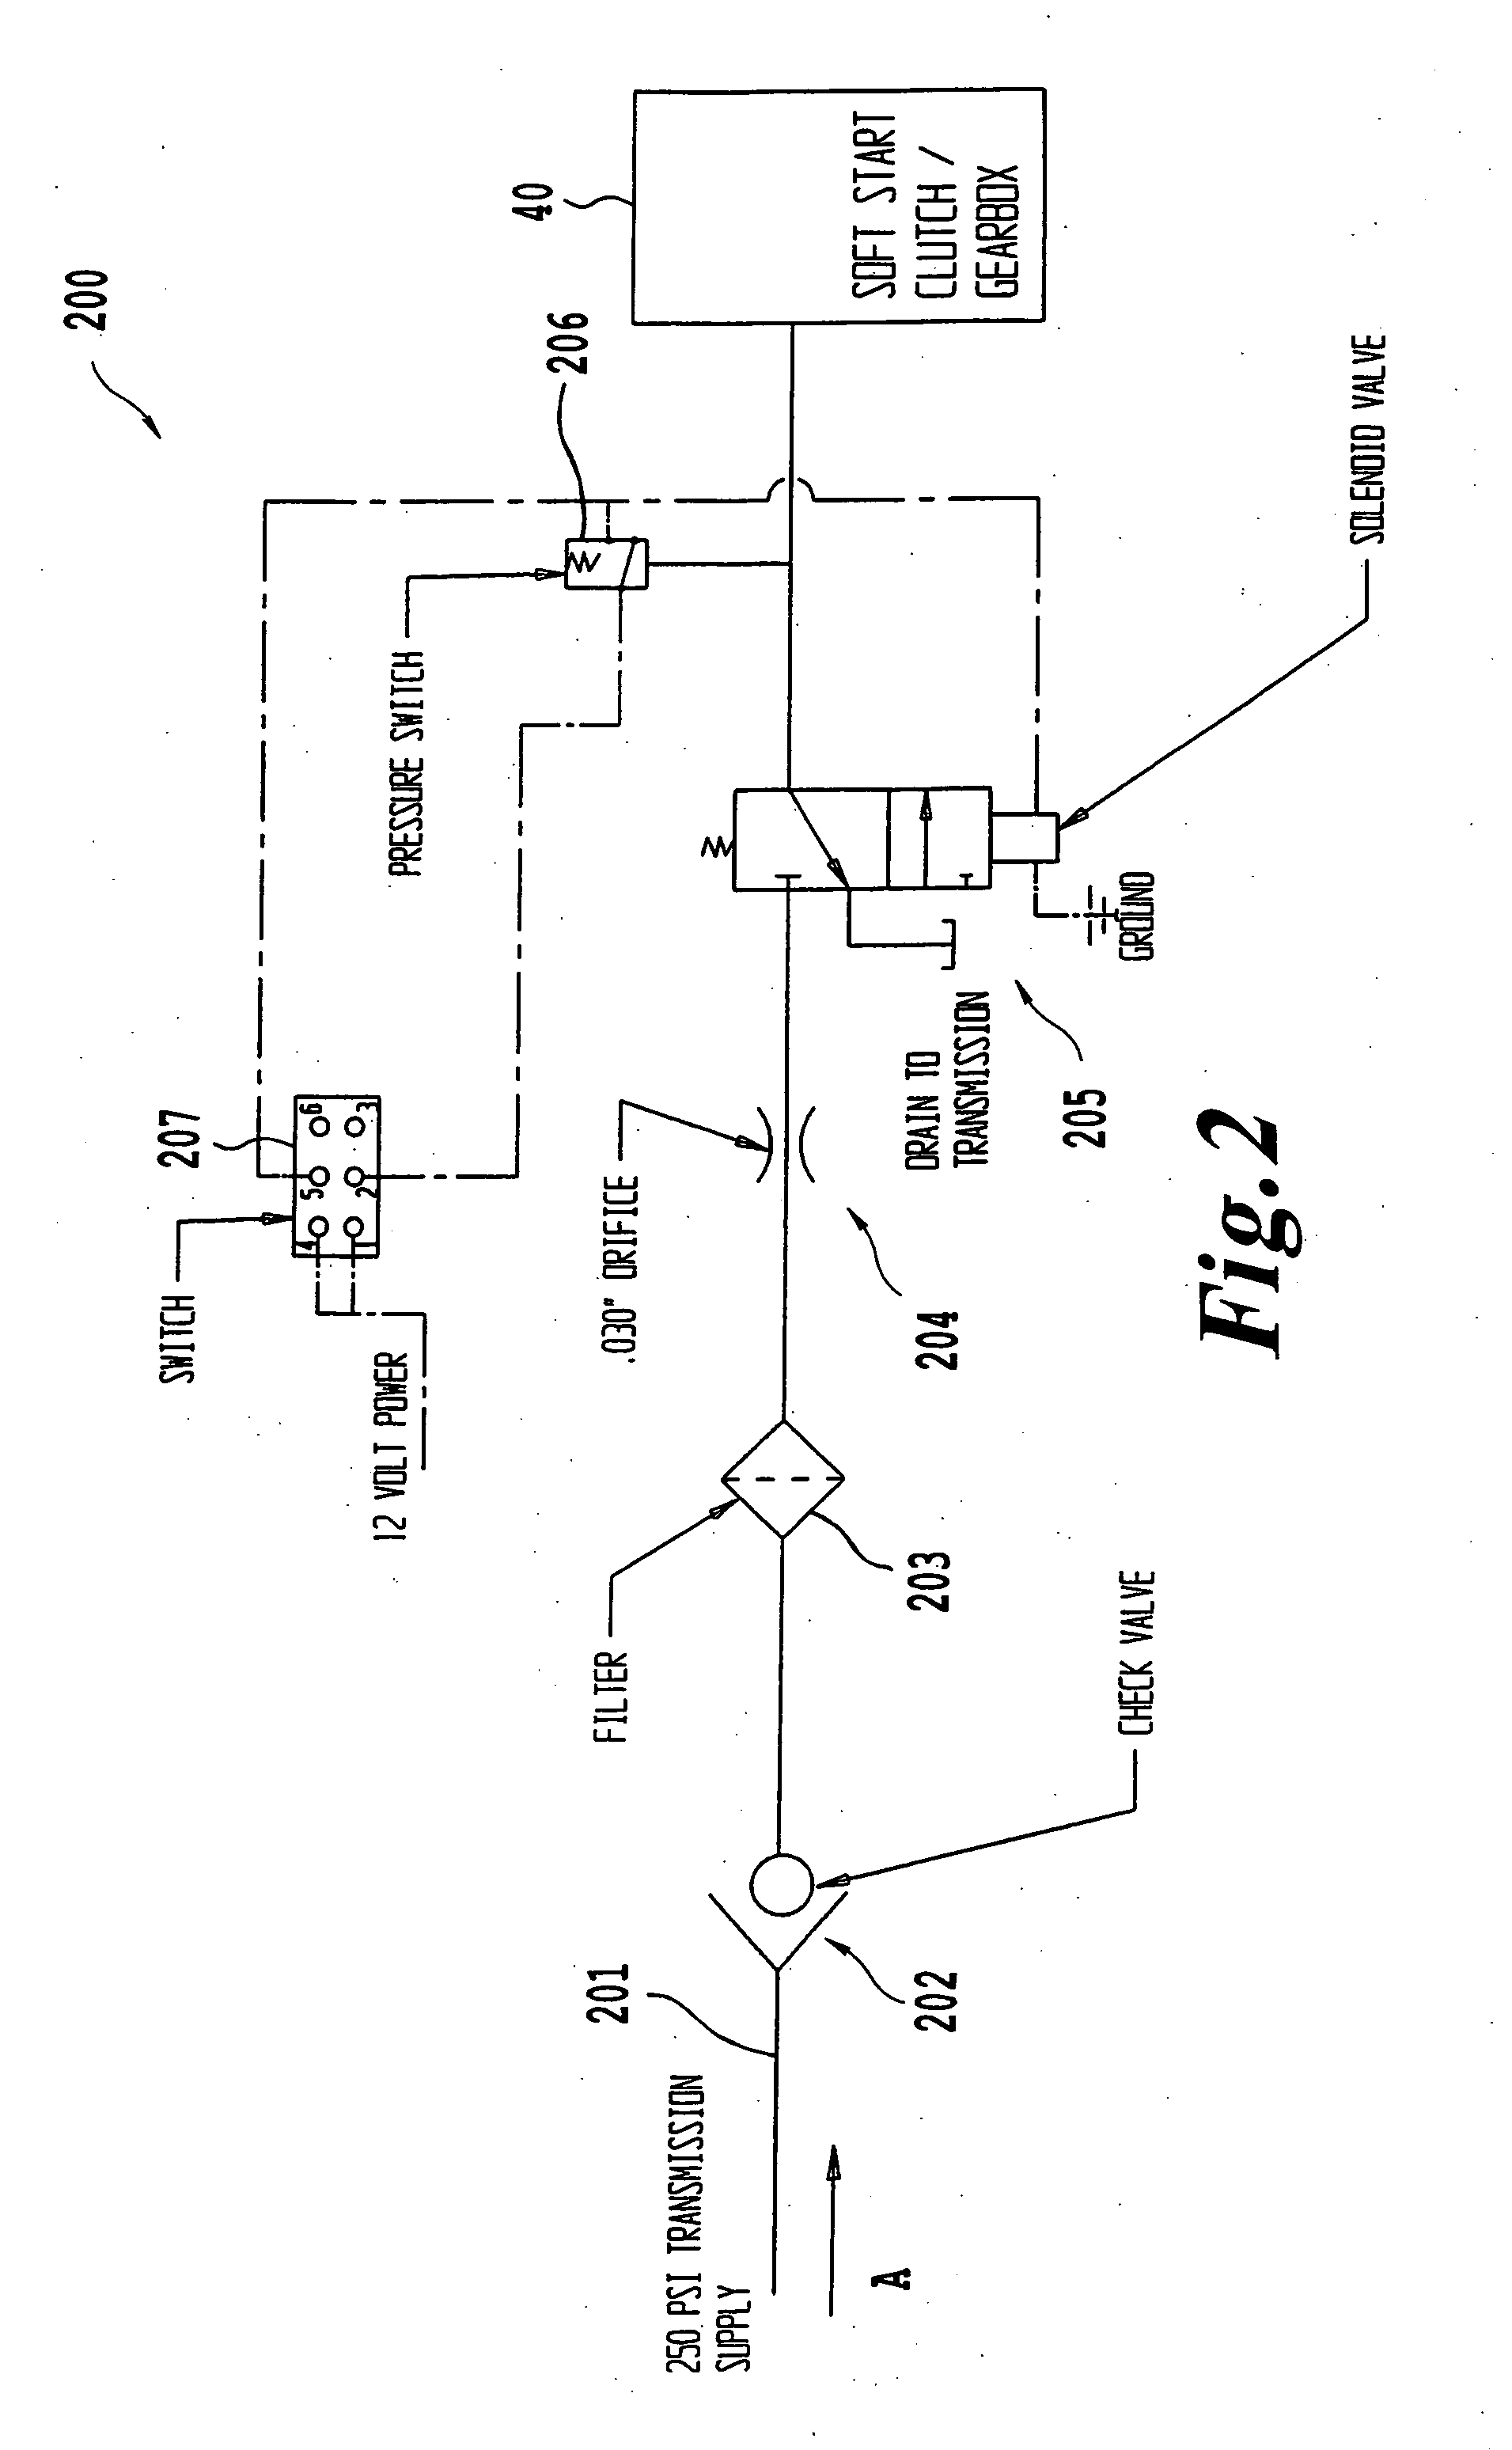 US20060214035A1 20060928 D00003 patent us20060214035 system and method of implementing a soft PTO Switch Wiring Diagram for Massey Furgeson at reclaimingppi.co